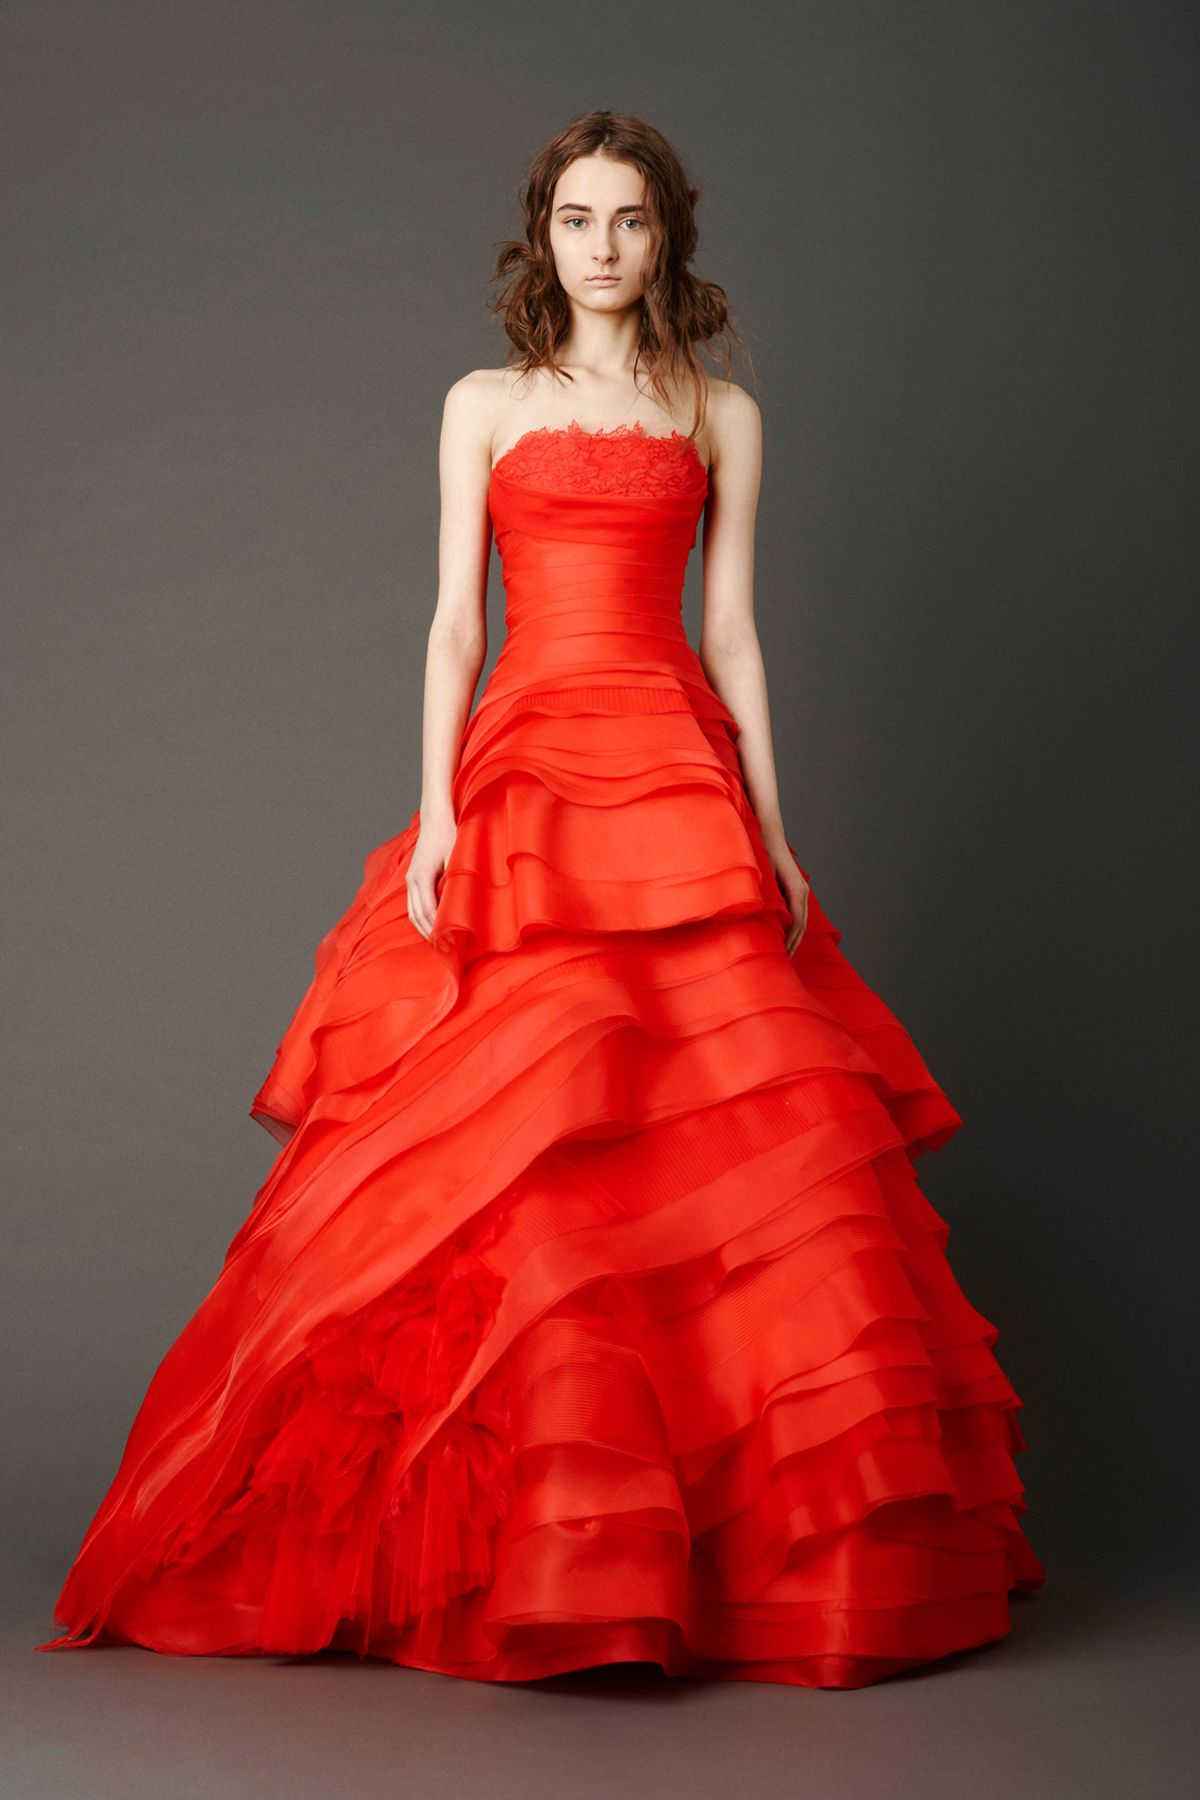 Red wedding dresses vera wang  Cardinal strapless biascut ballgown with handrolled floral and